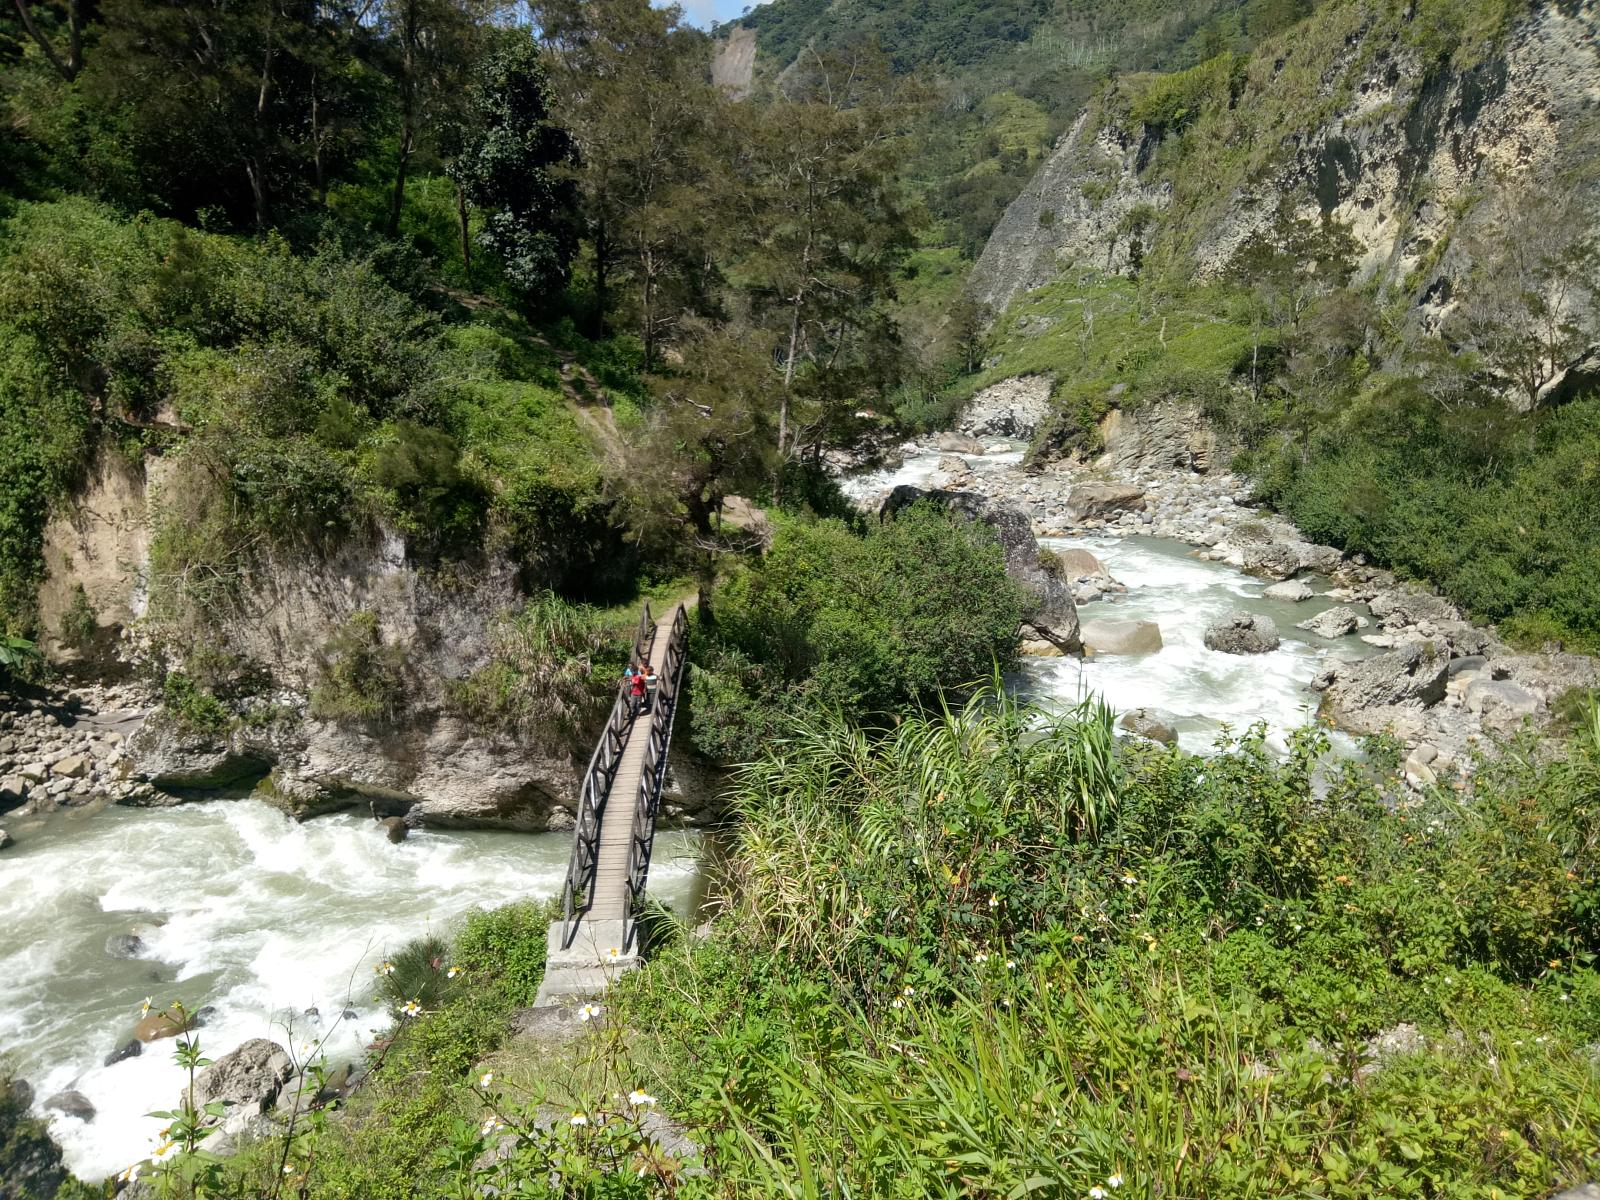 Photo of 3 days and 2 nights in the Baliem valley